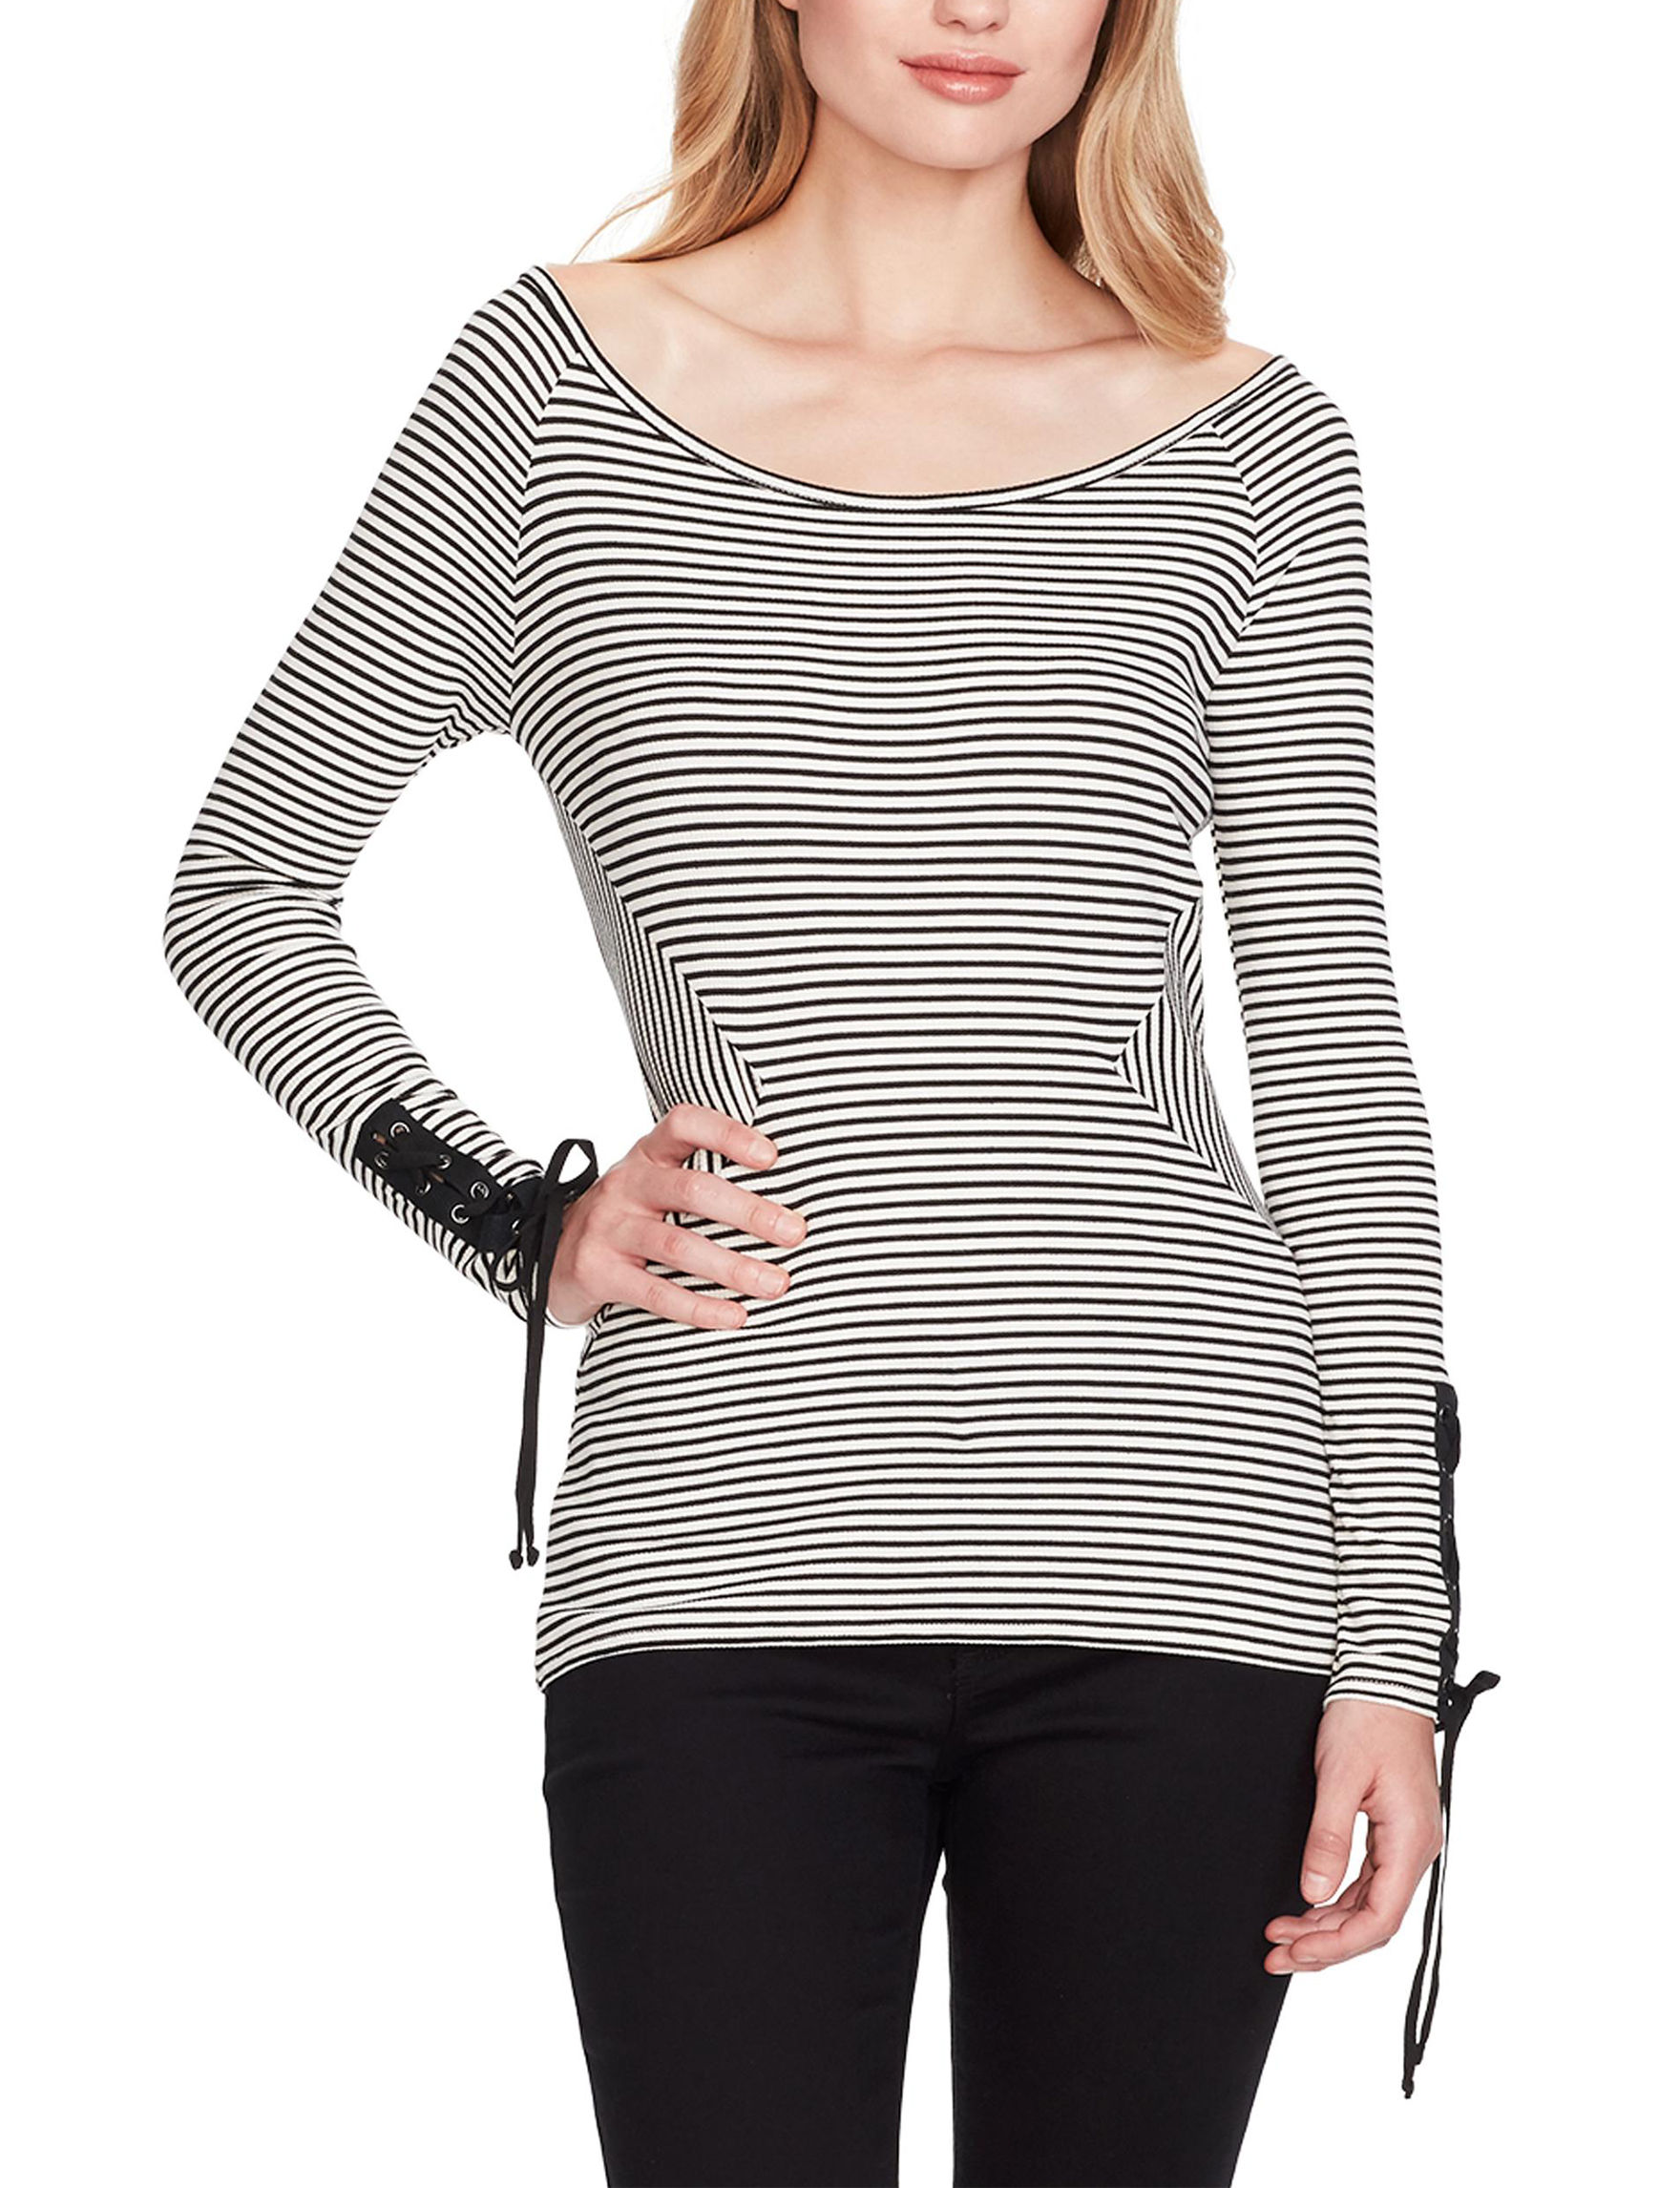 Jessica Simpson Black / White Stripe